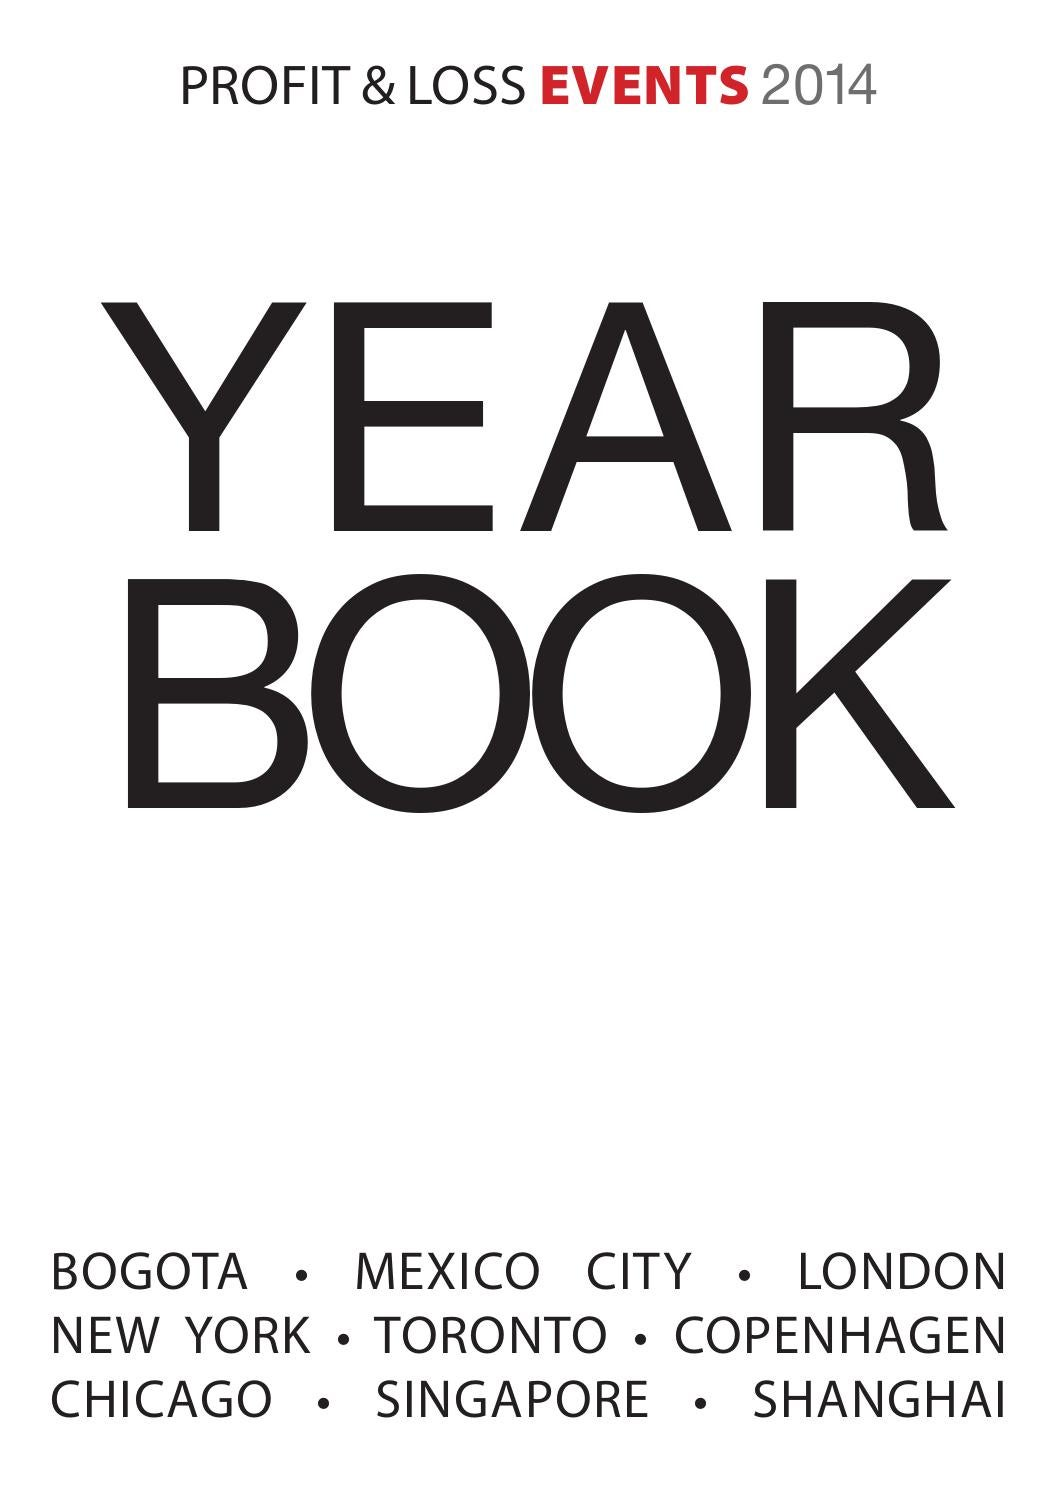 Pl yearbook 2014 by P&L Services Ltd  - issuu